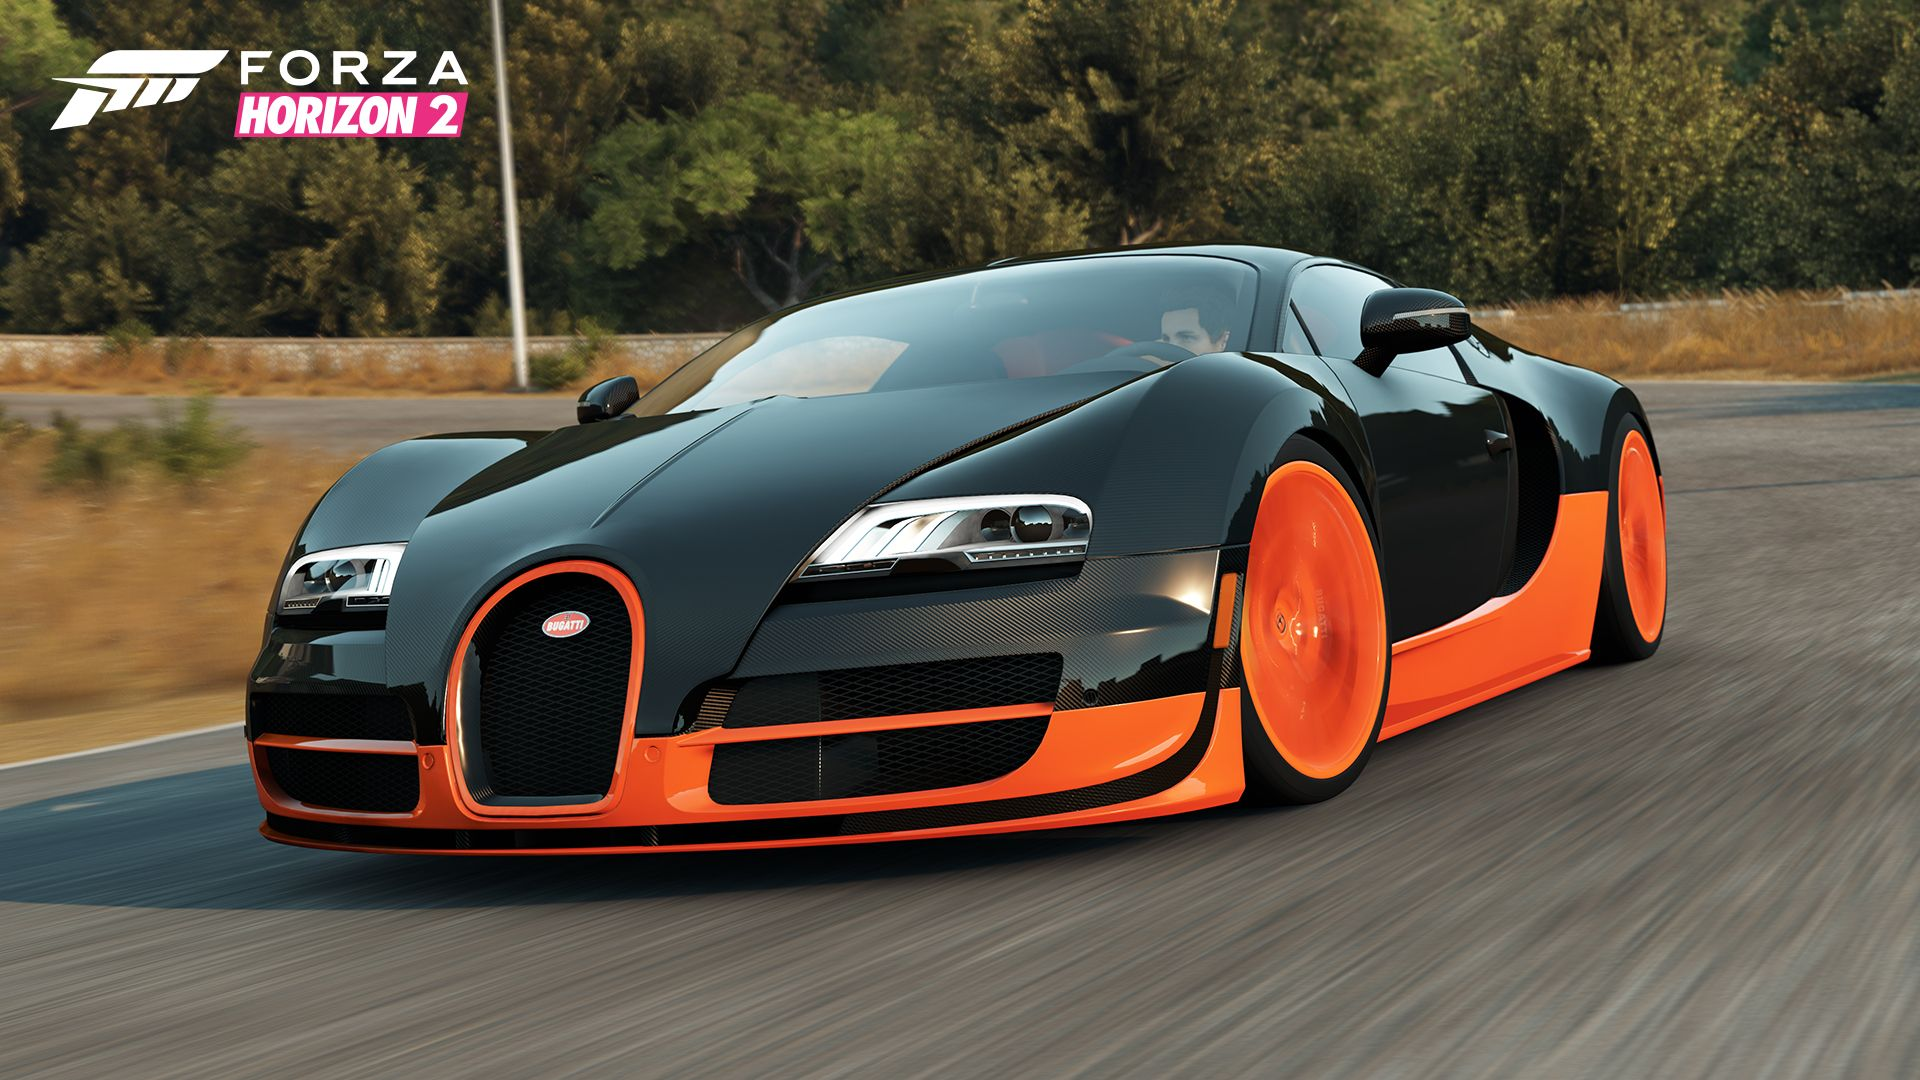 Forza Horizon 2 Car Reveal – Check Out the Week Six Cars - Xbox Wire